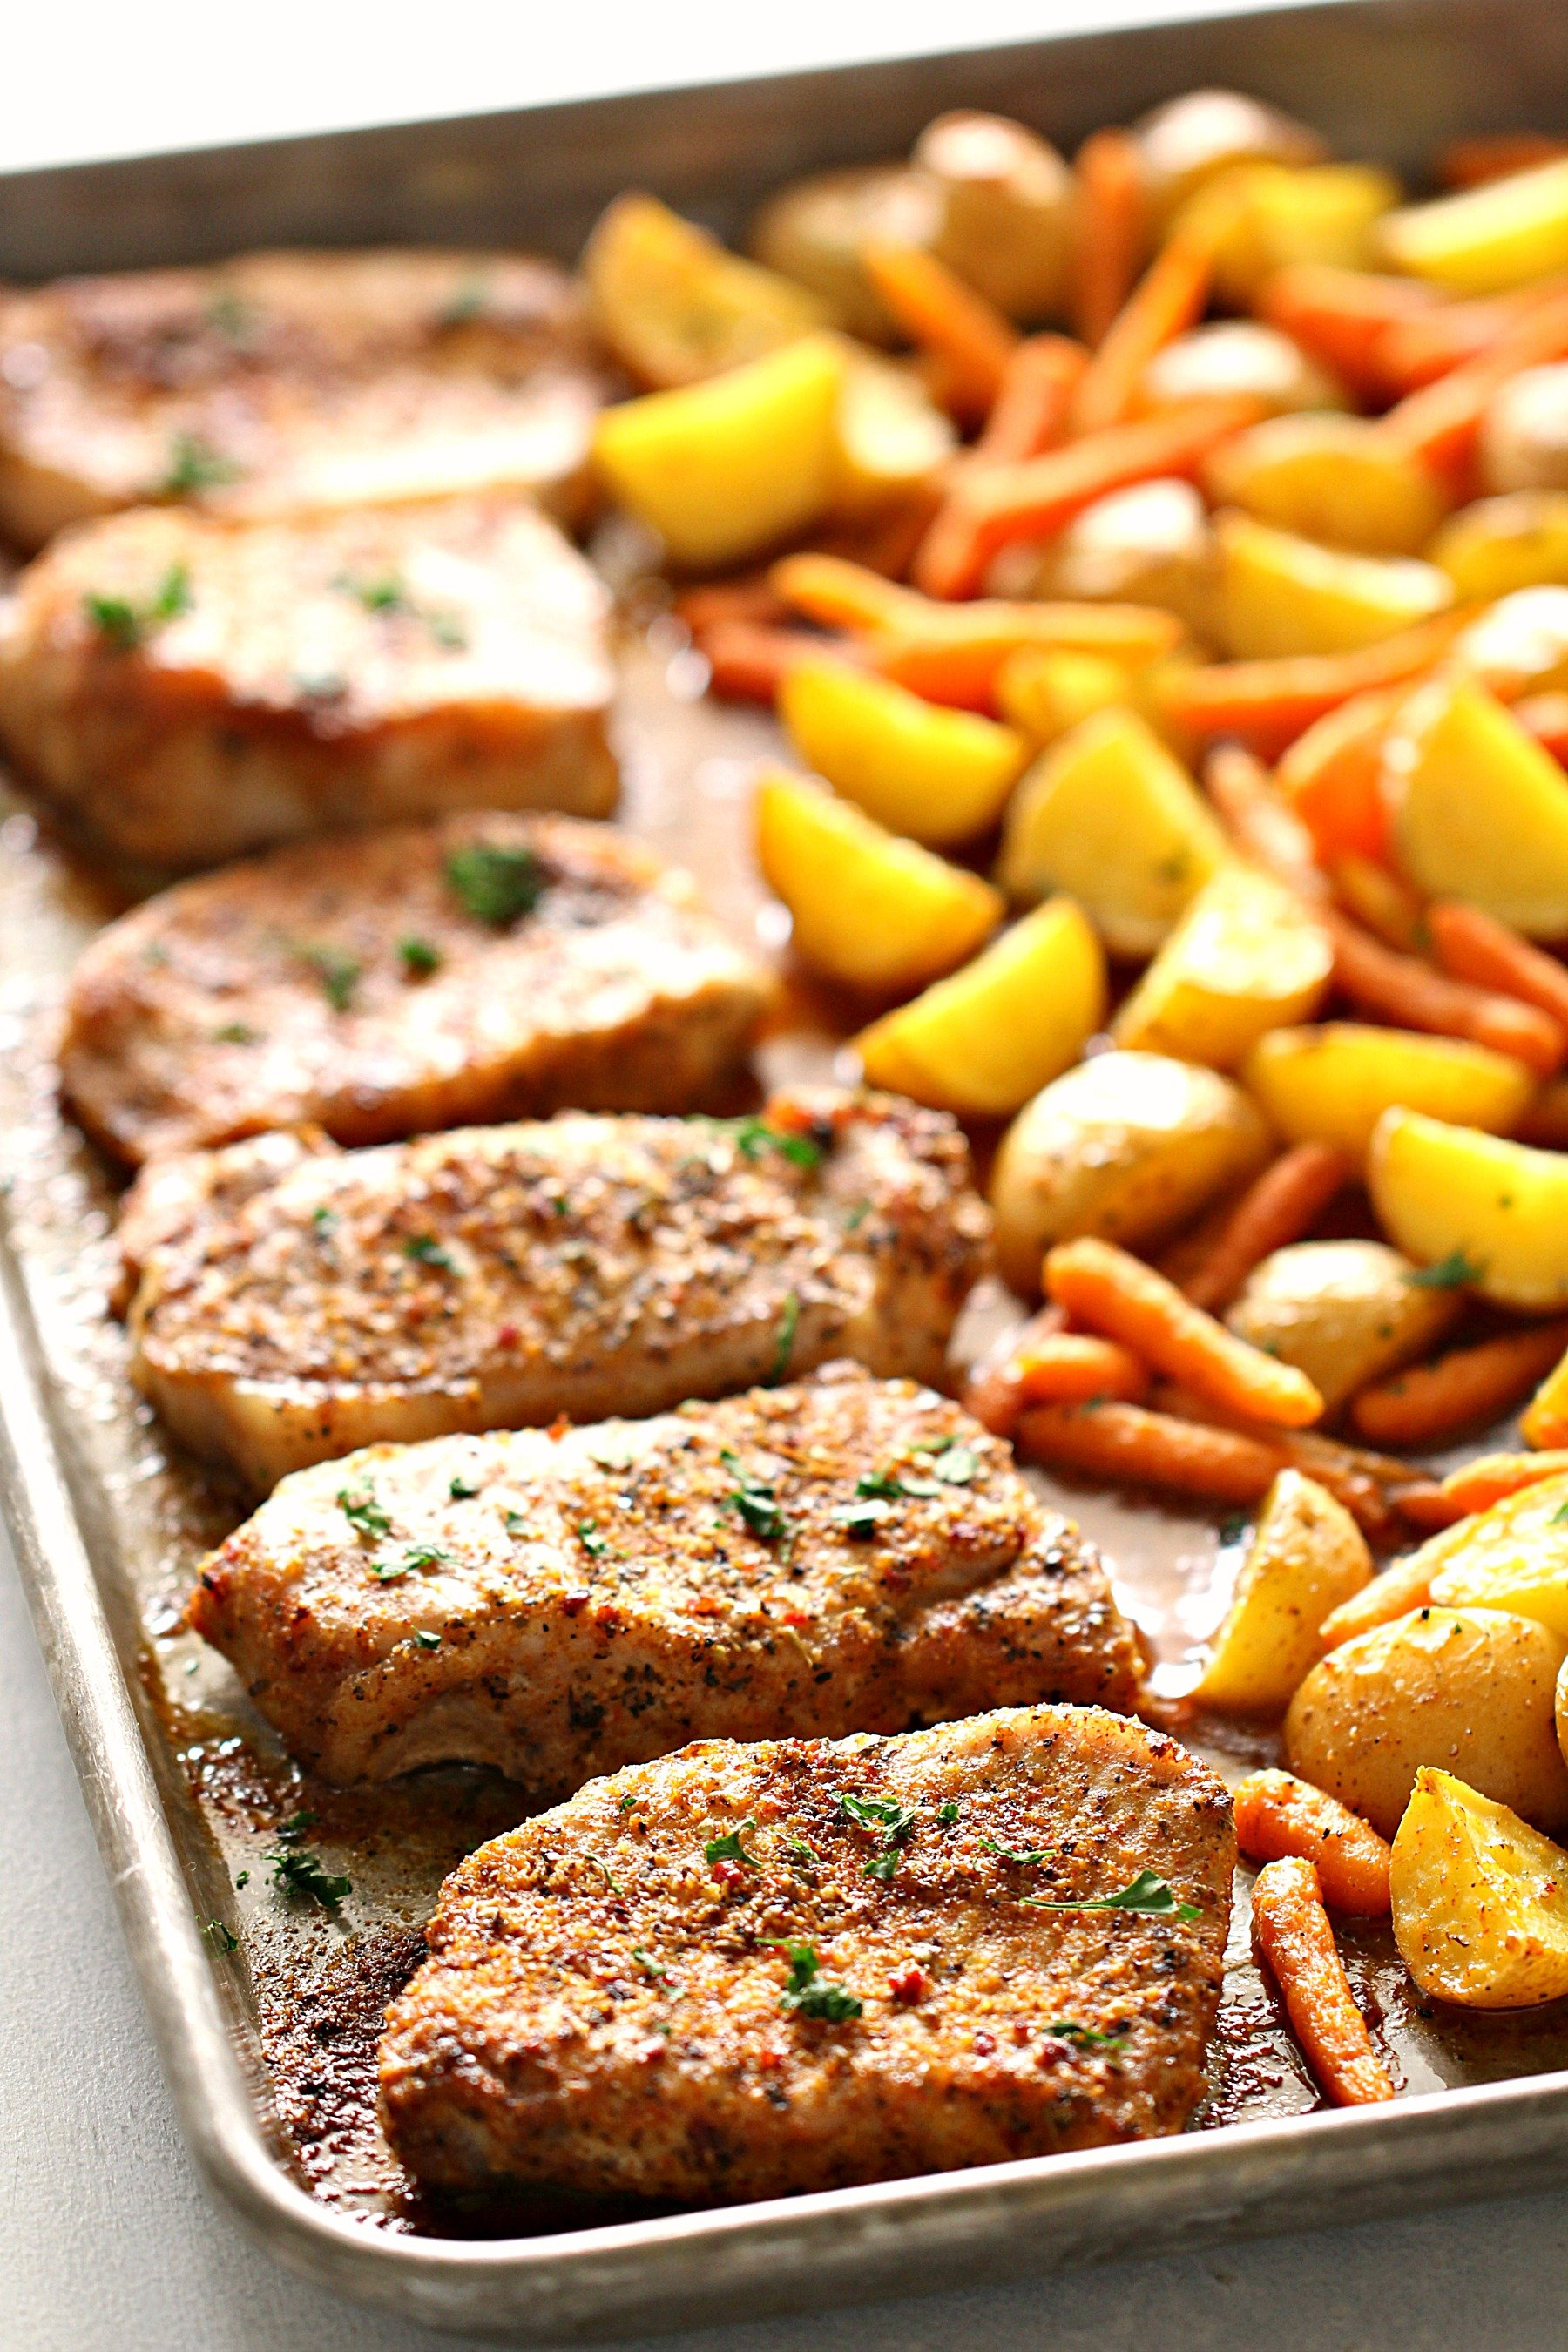 Sheet Pan Italian Pork Chops Recipe with Potatoes and Carrots